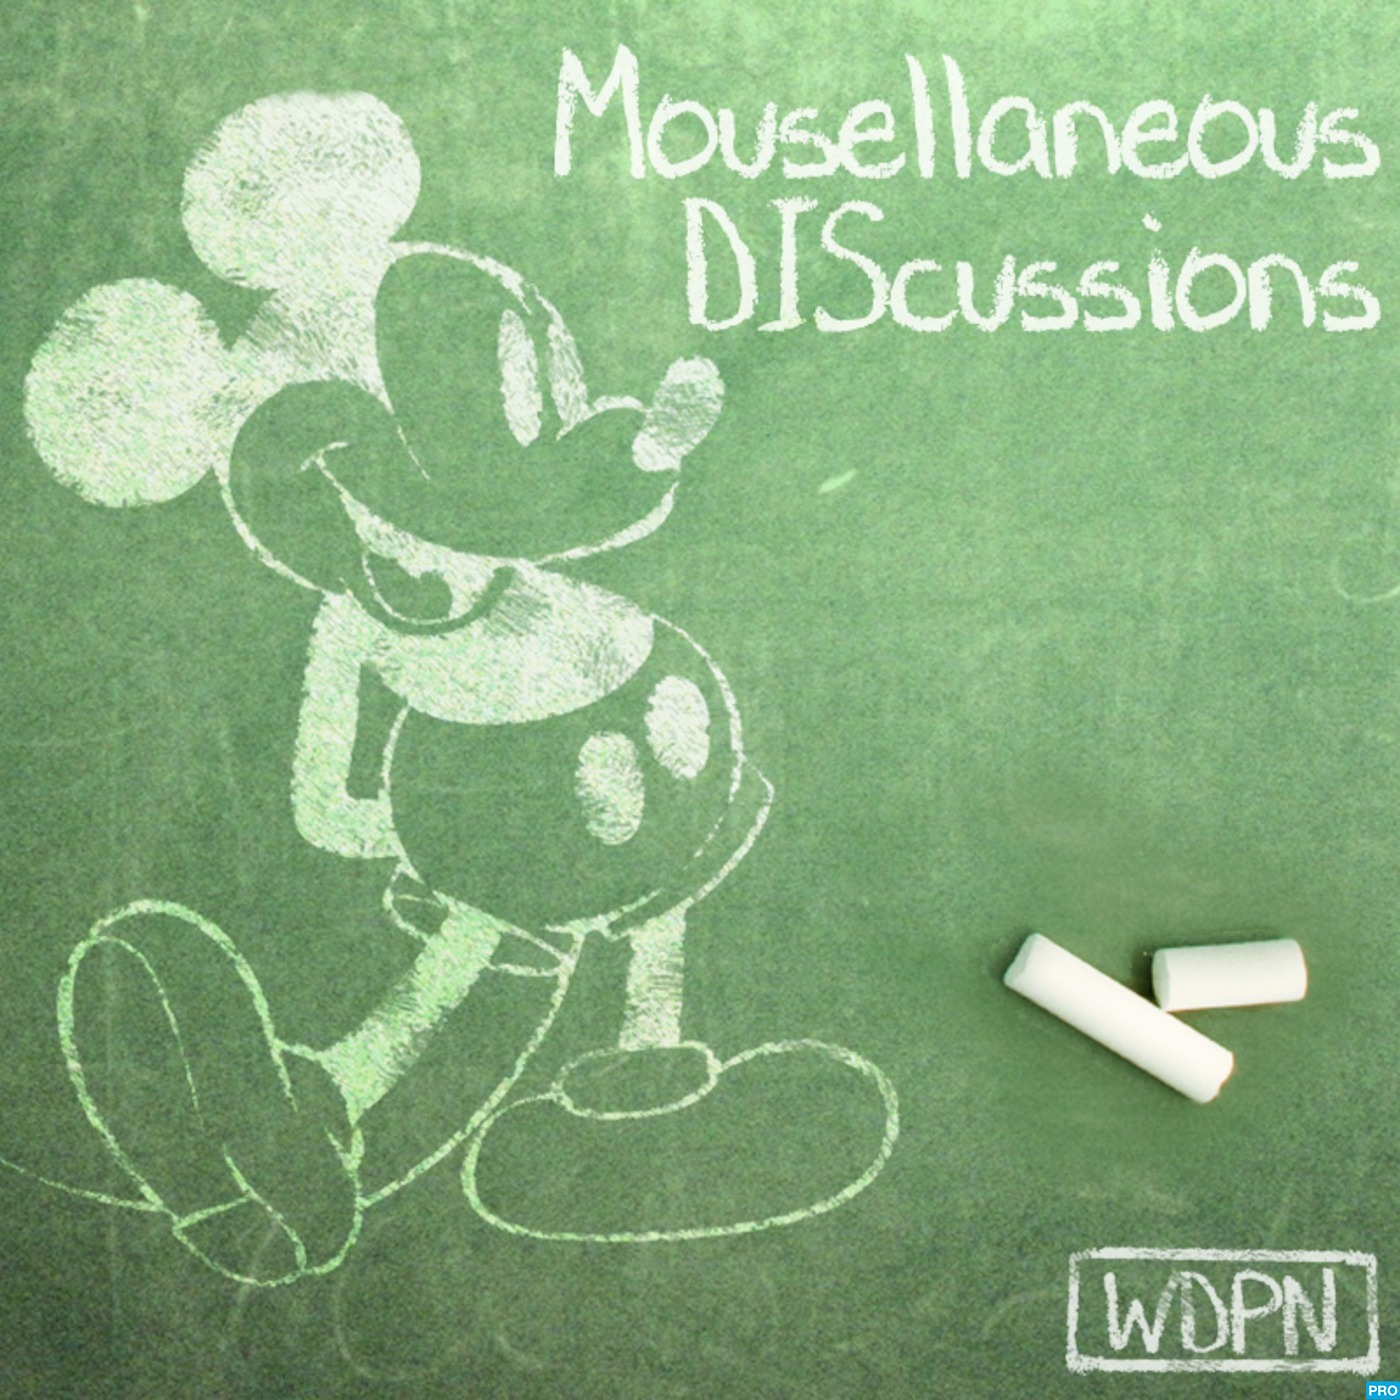 Mousellaneous DIScussions: A Disney Talk Show